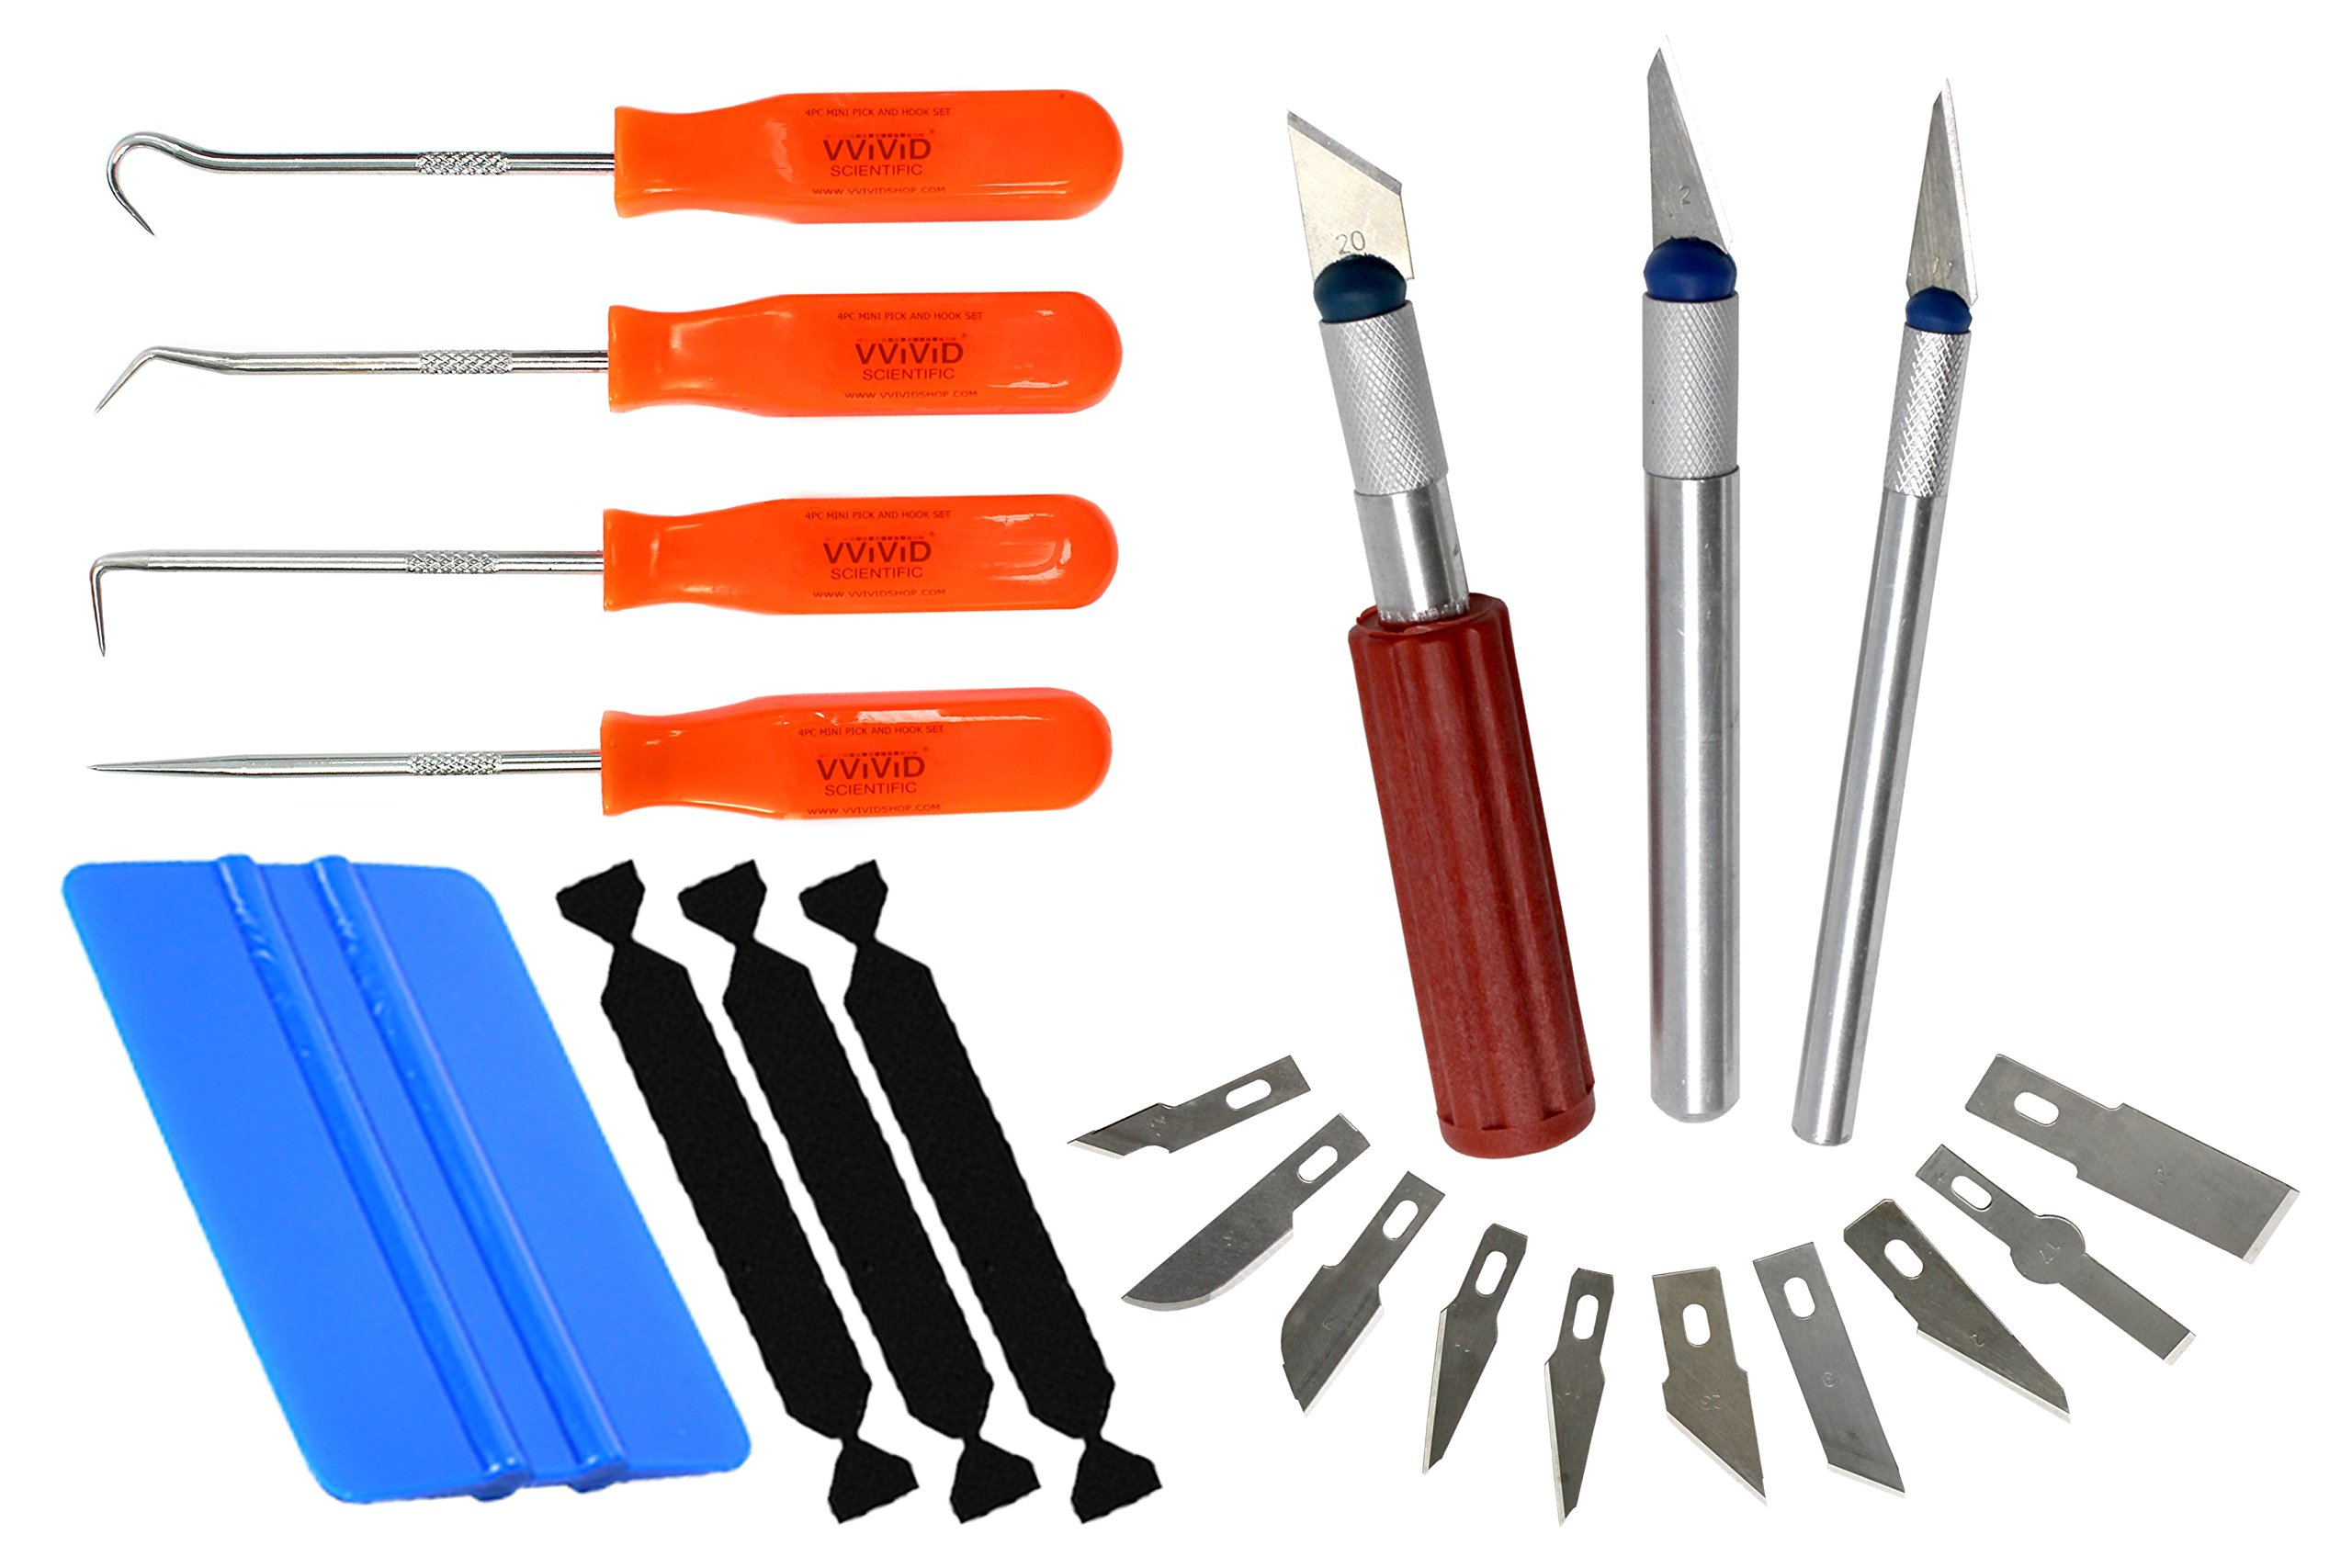 VViViD Complete Vinyl Weeding and Application Toolkit Bundle Including Weeding Tools, Craft Cutting Multi-Blade Kit, Squeegee and 3 Black Felt Decals